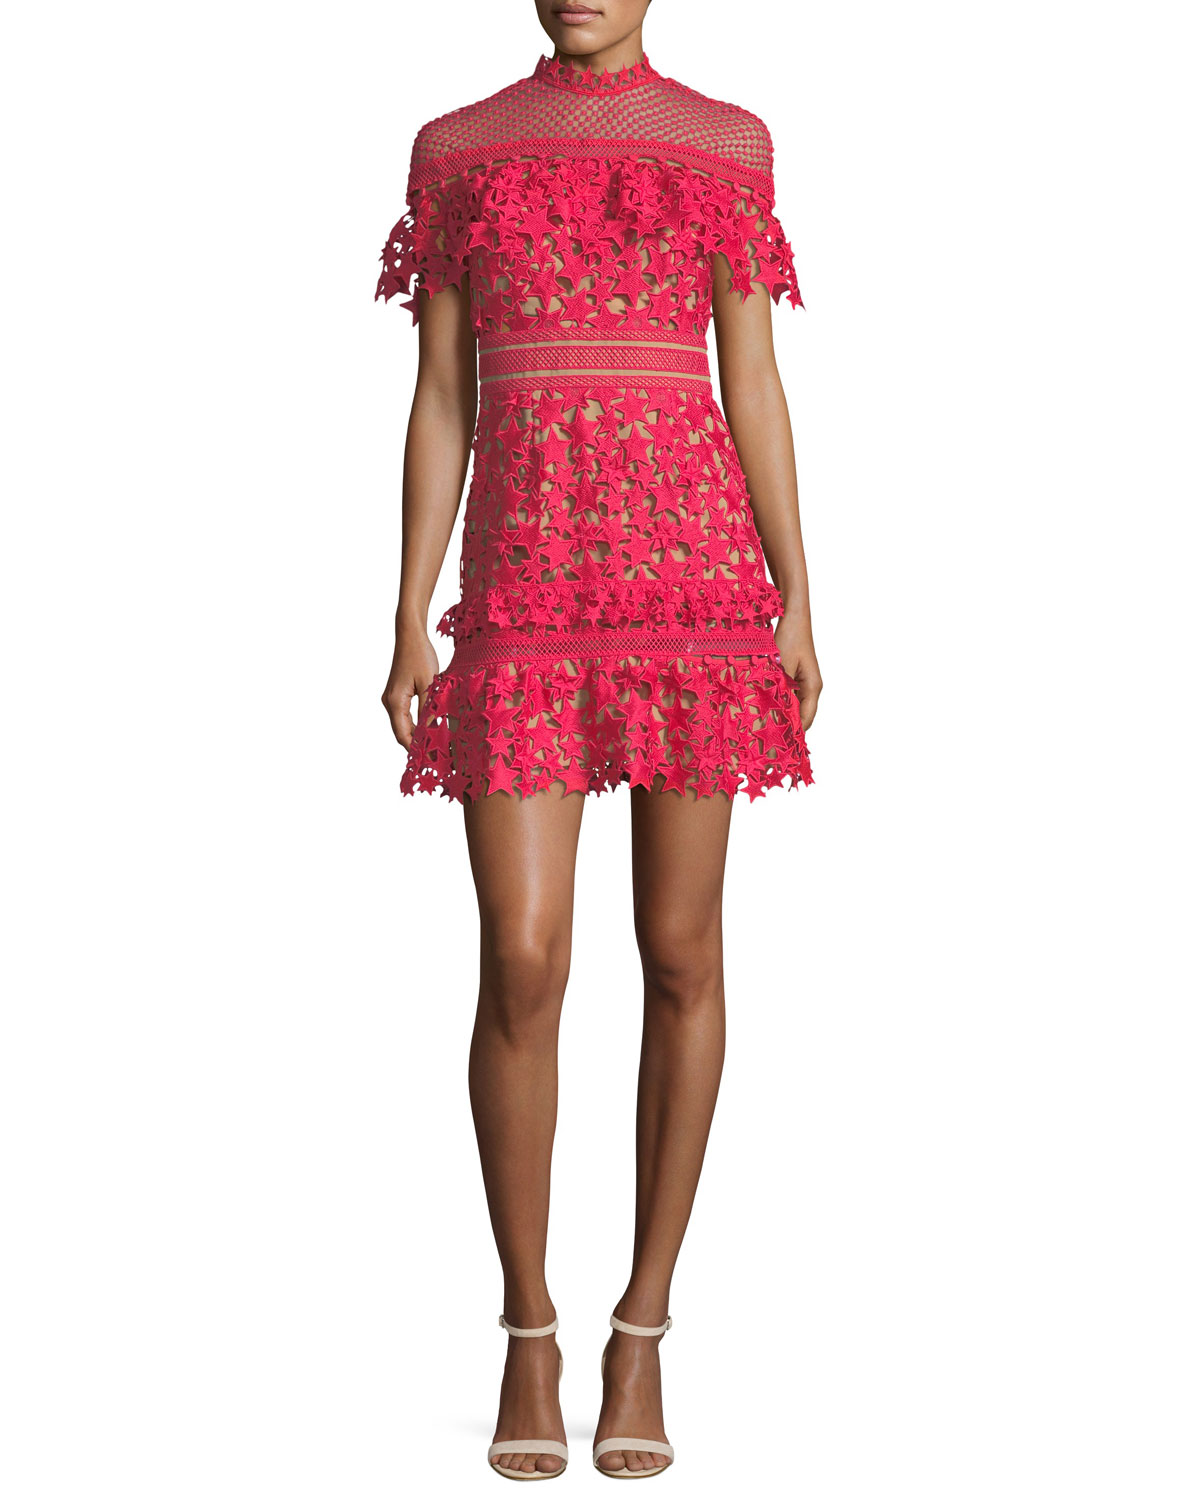 Red Cocktail Dress   Neiman Marcus